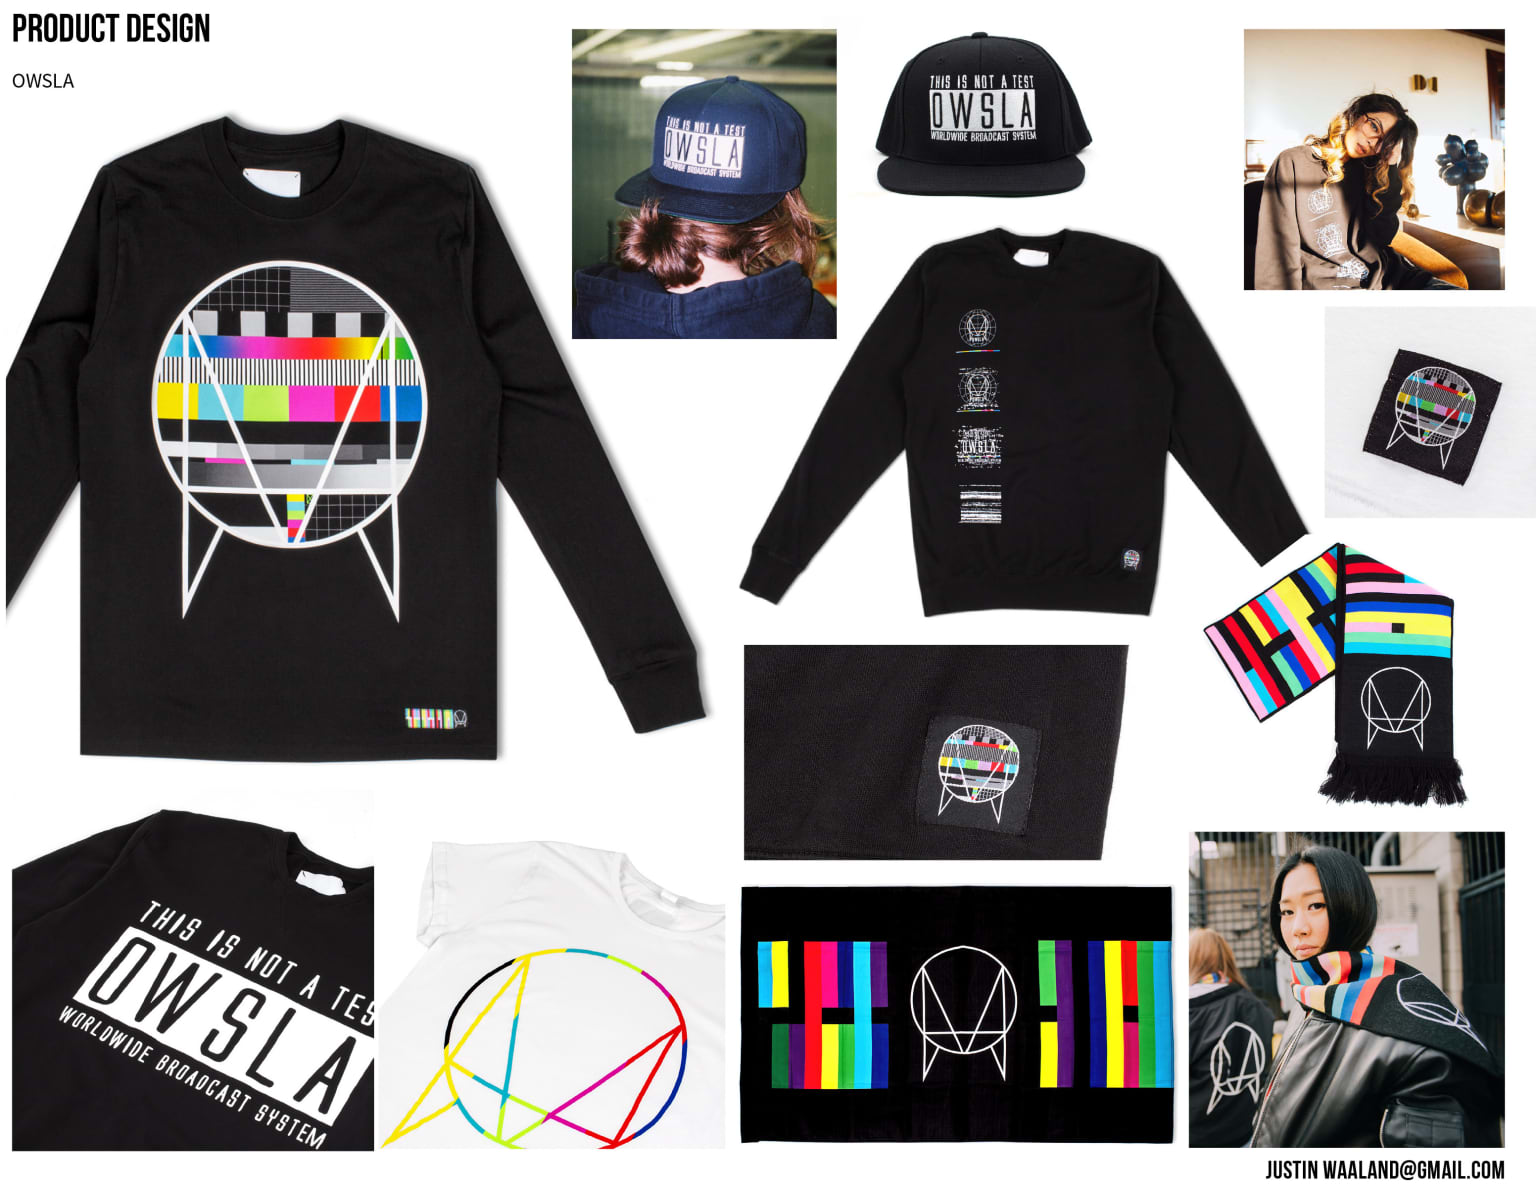 OWSLA Product Design